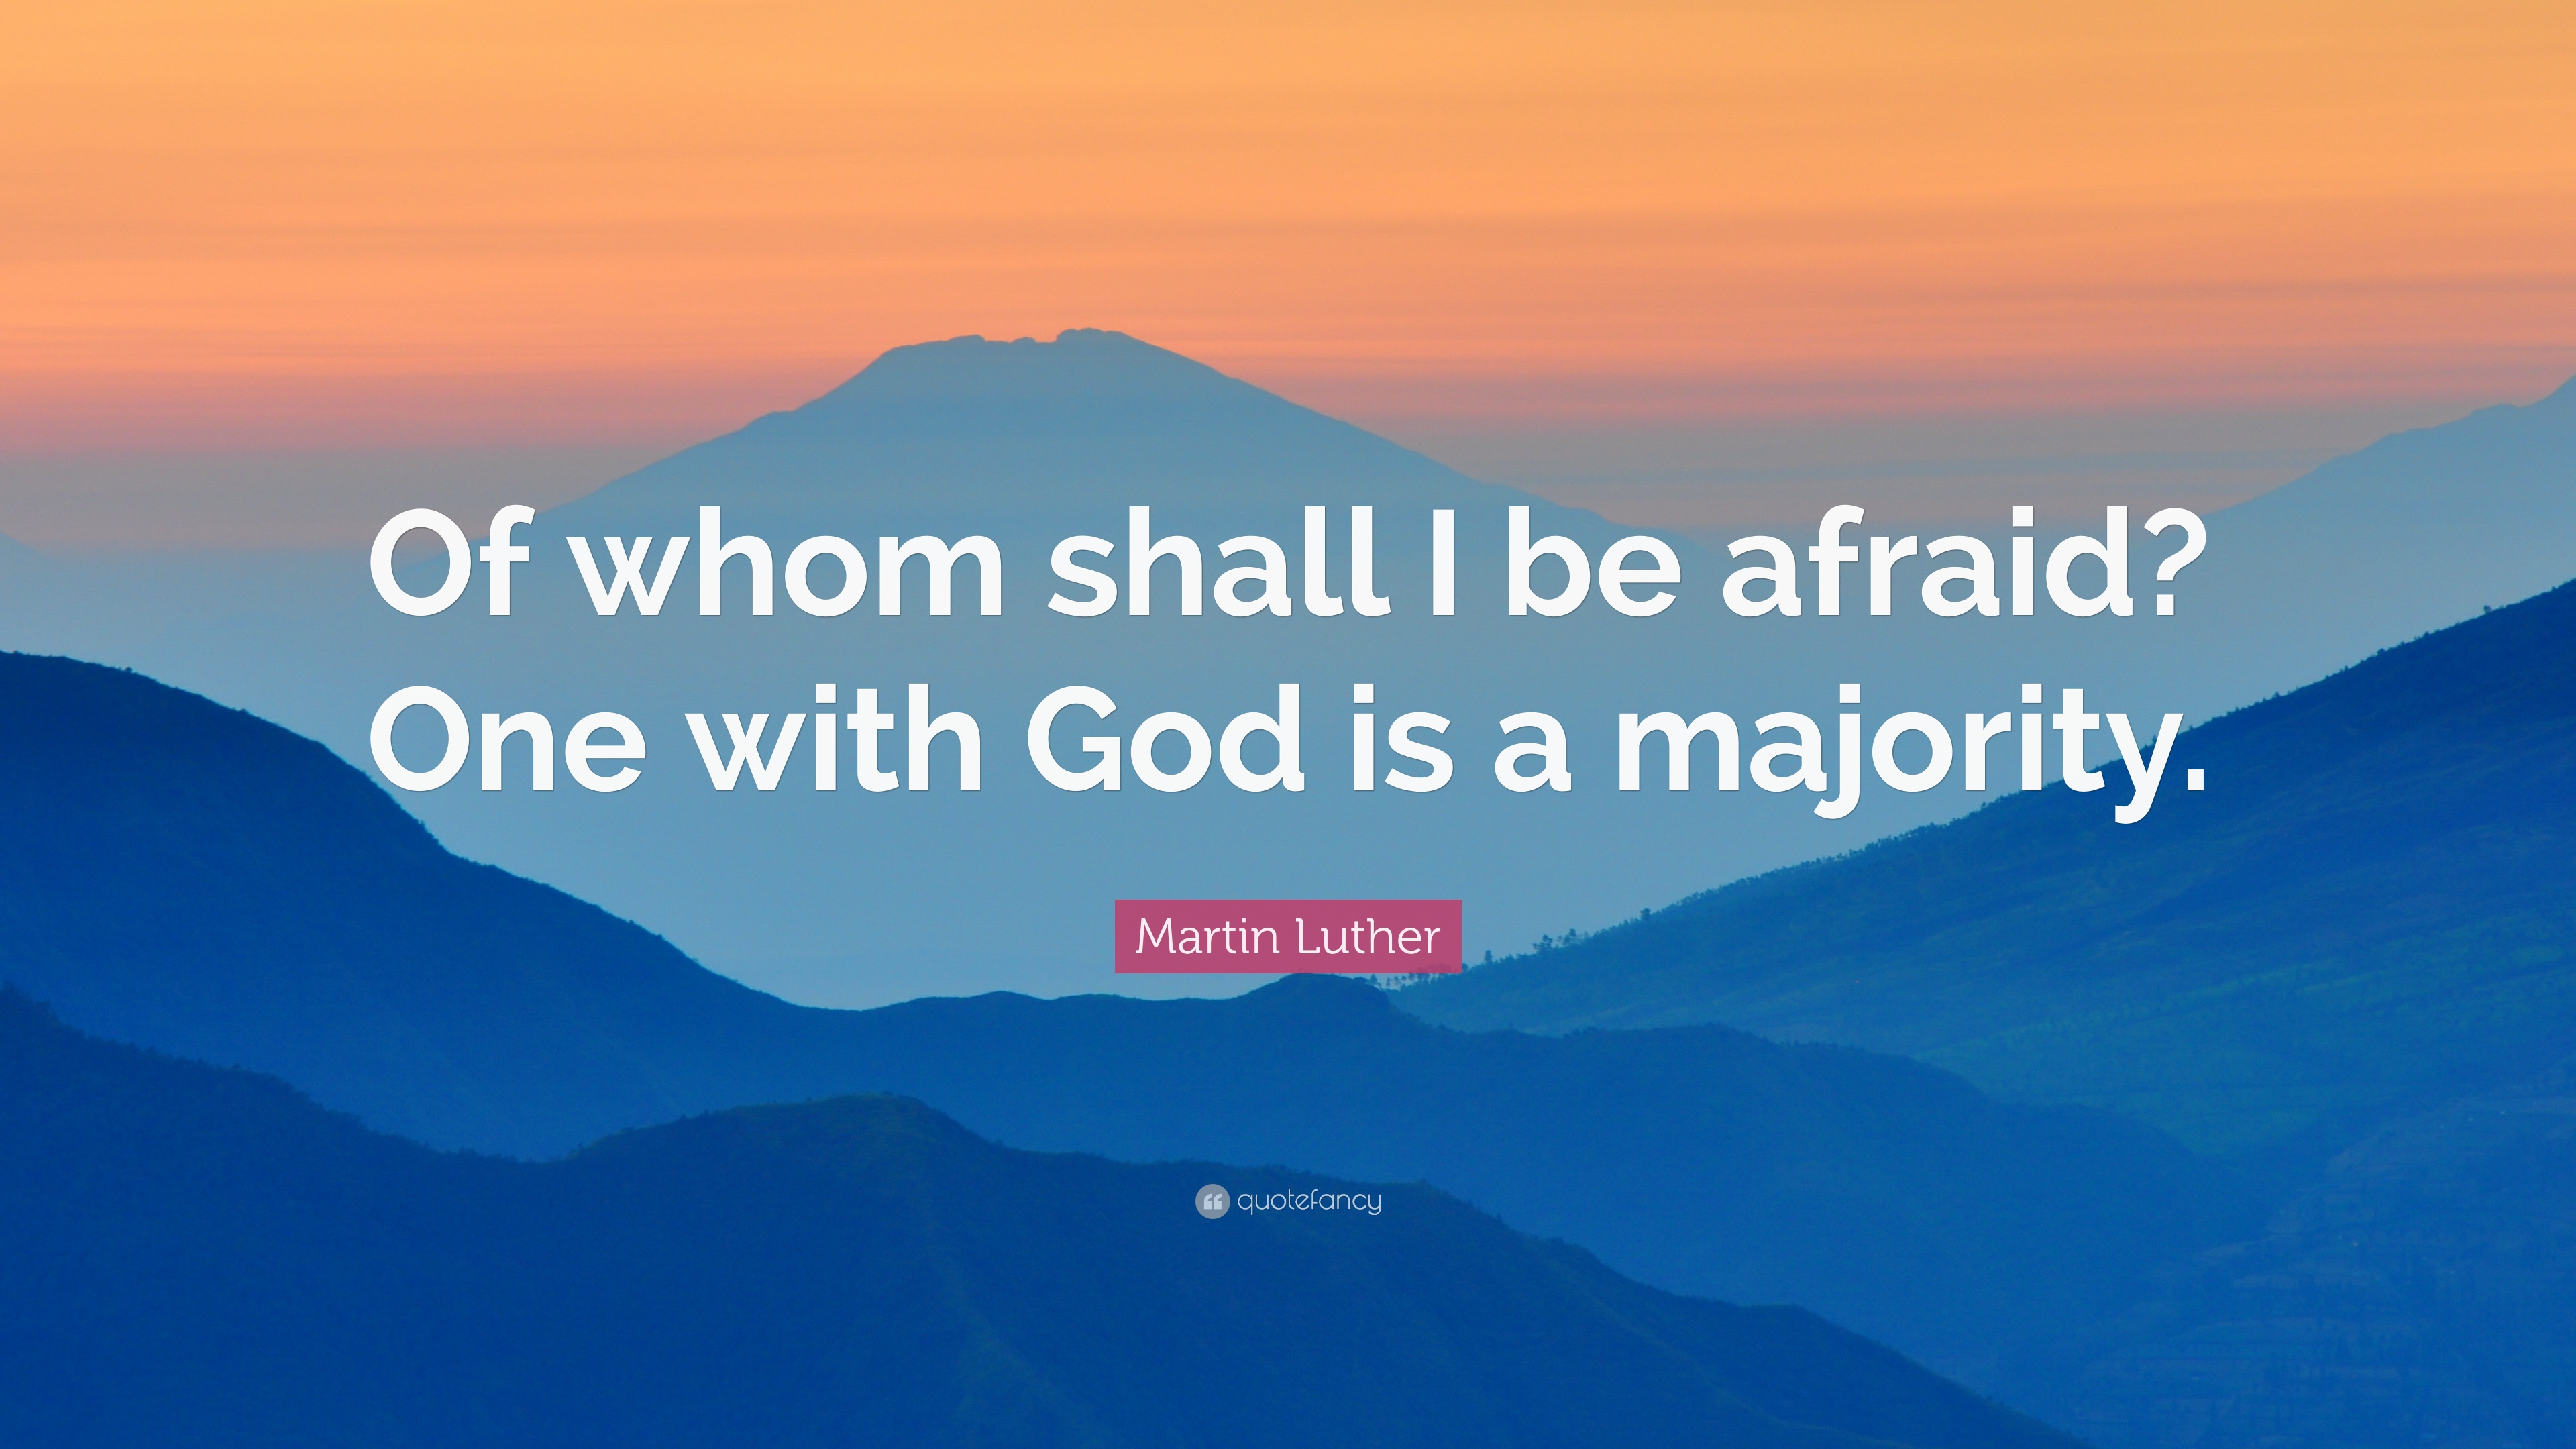 Martin Luther Quote Of Whom Shall I Be Afraid One With God Is A Majority 12 Wallpapers Quotefancy